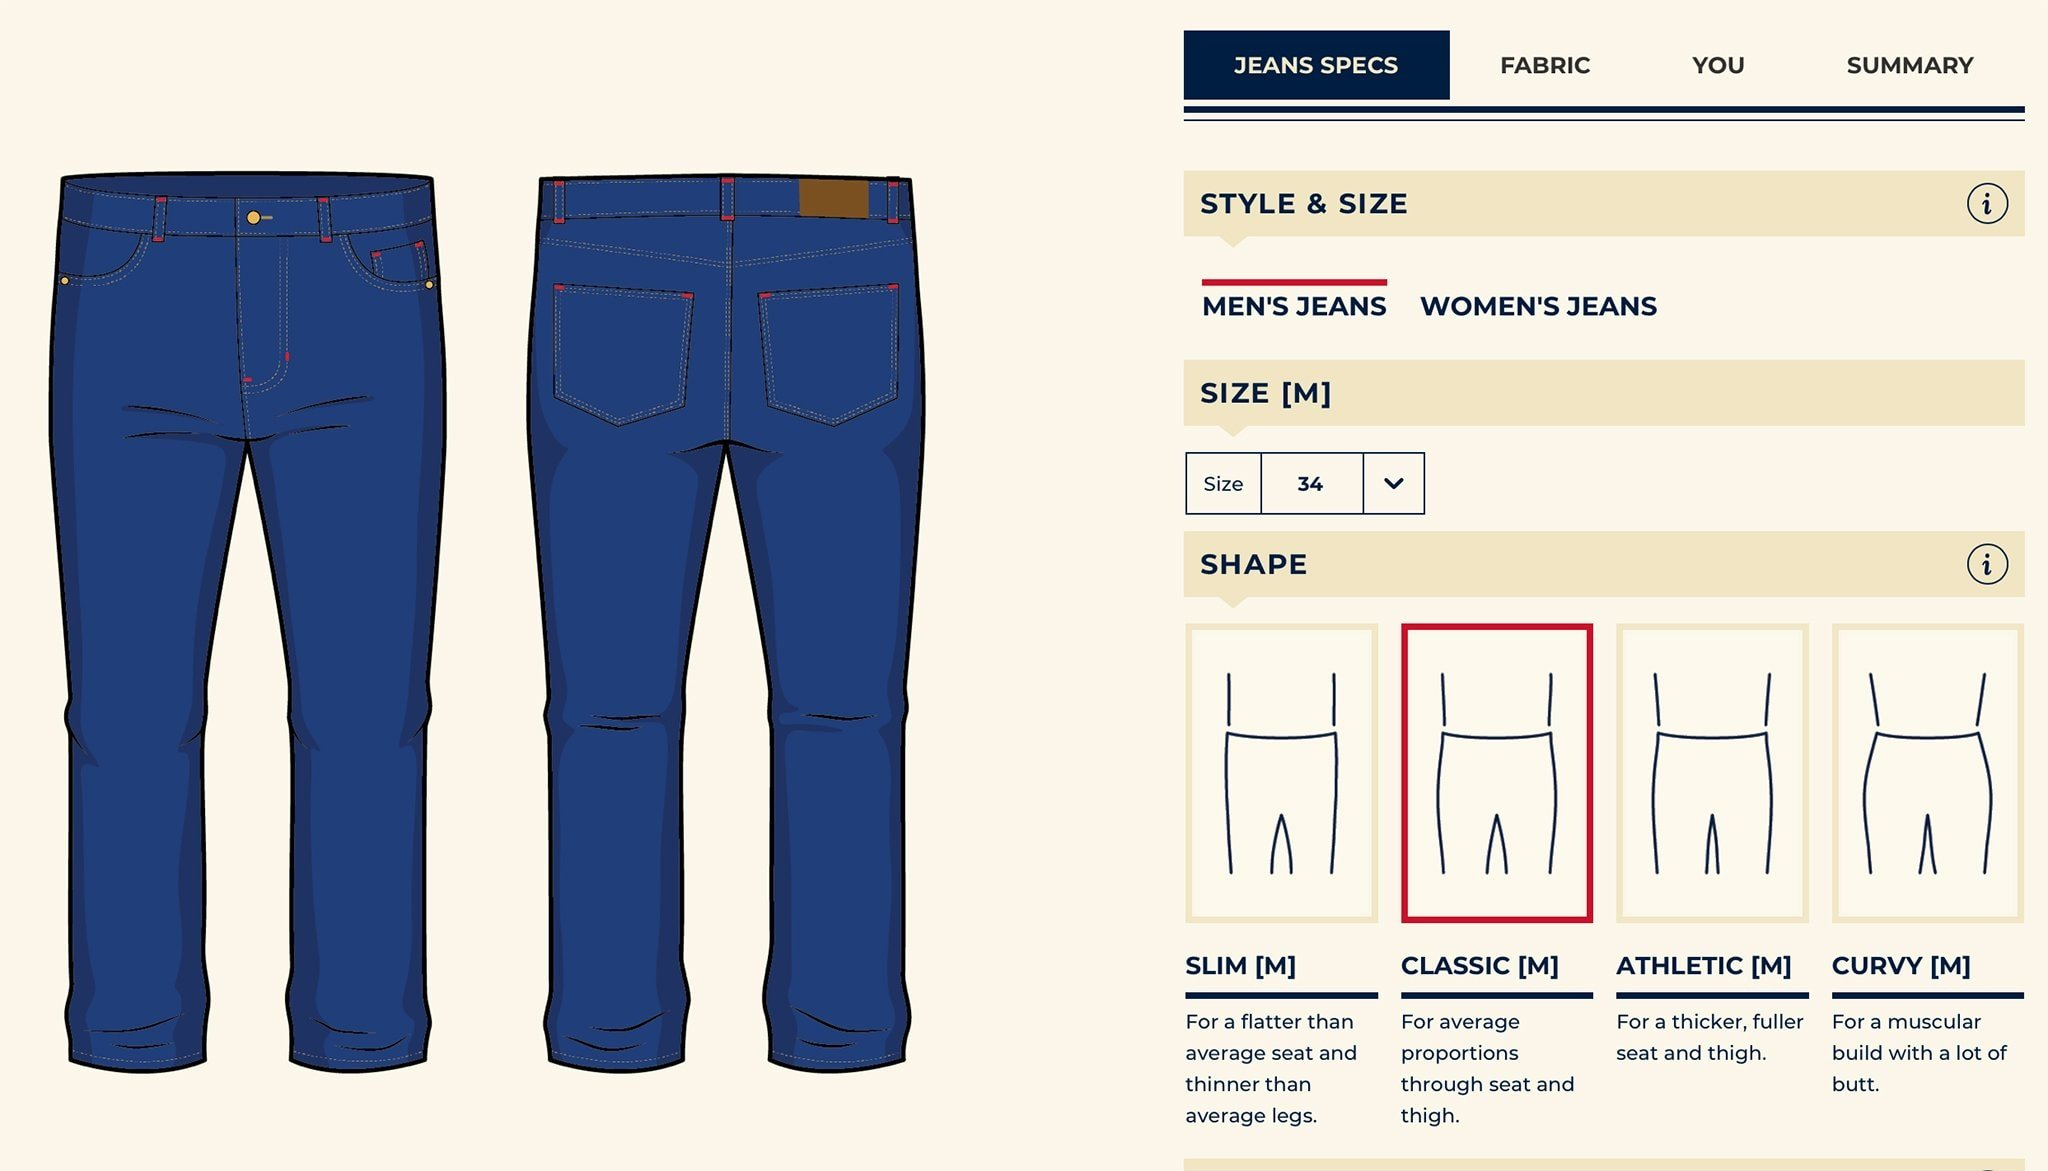 Detroit Denim Co. jeans are custom-made, from the fabric and cut to the inseam length and leg size